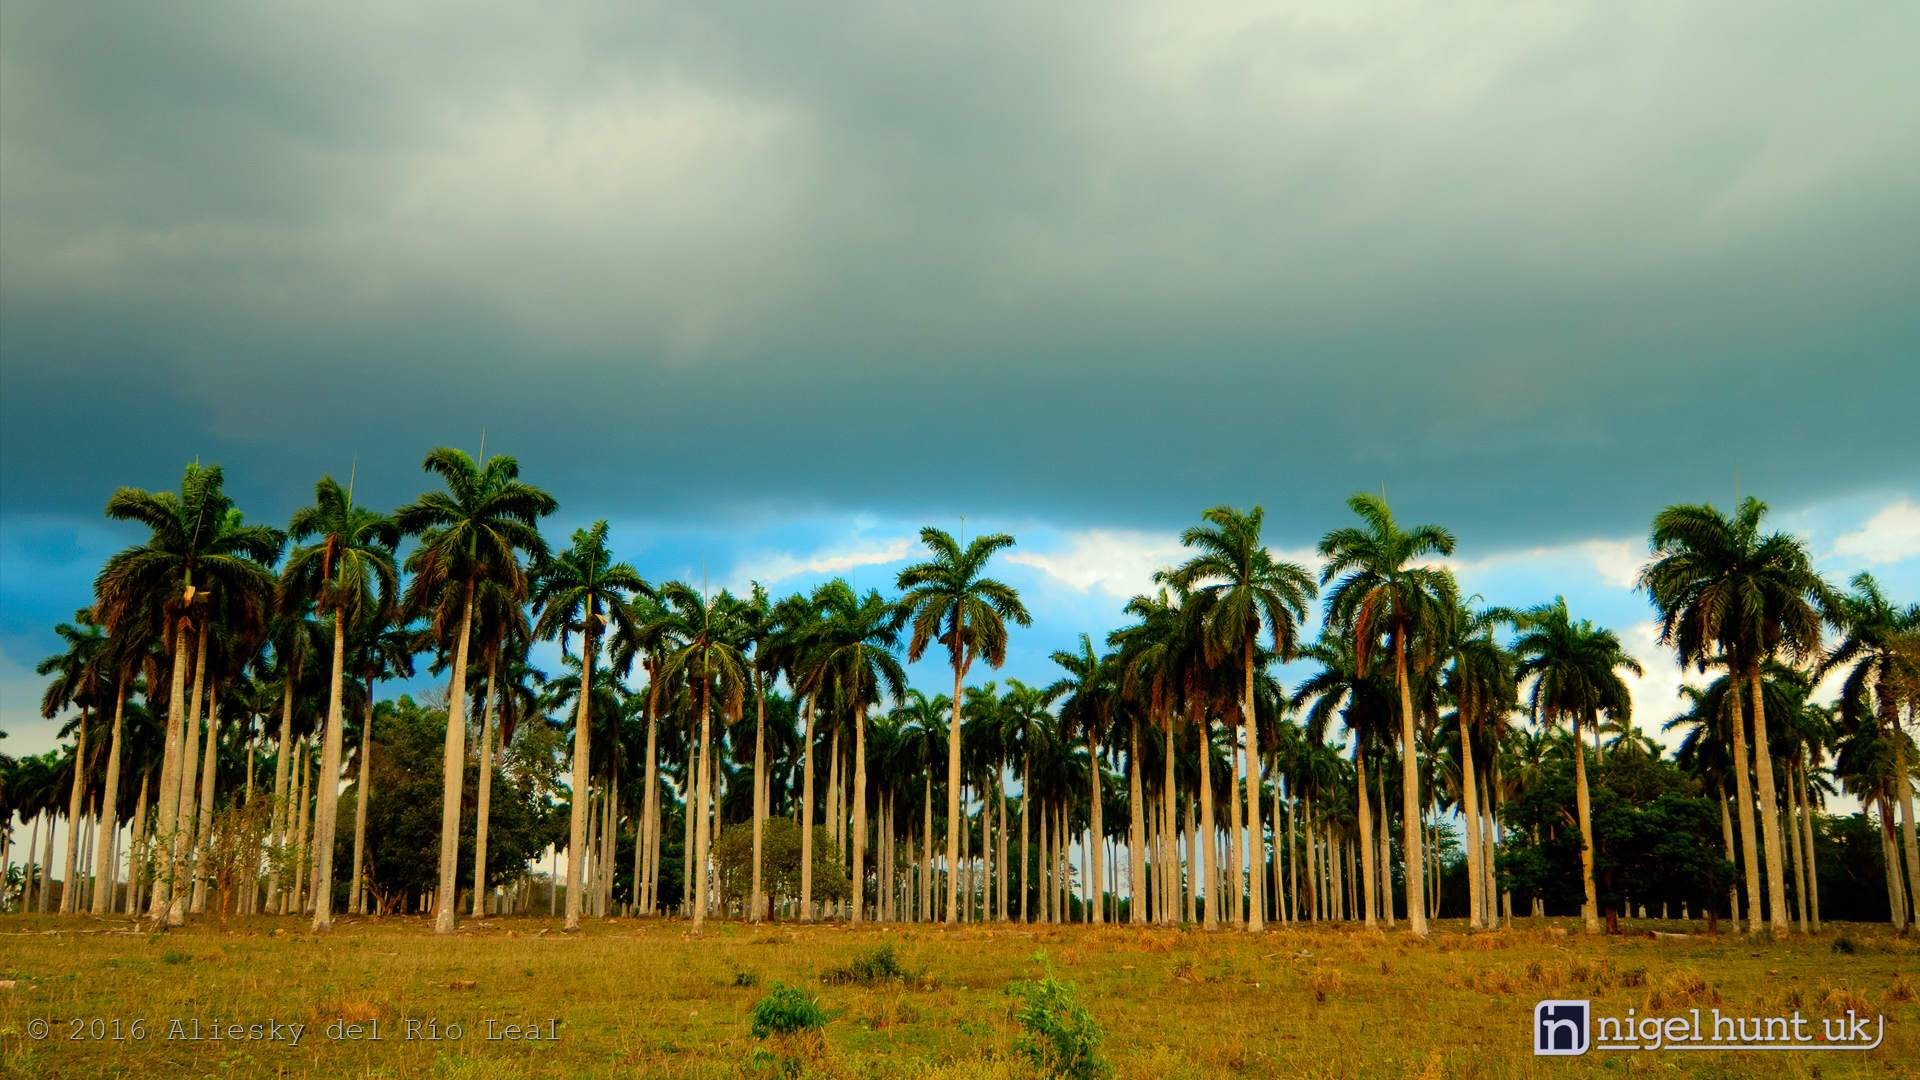 Royal Palm trees in Camaguey